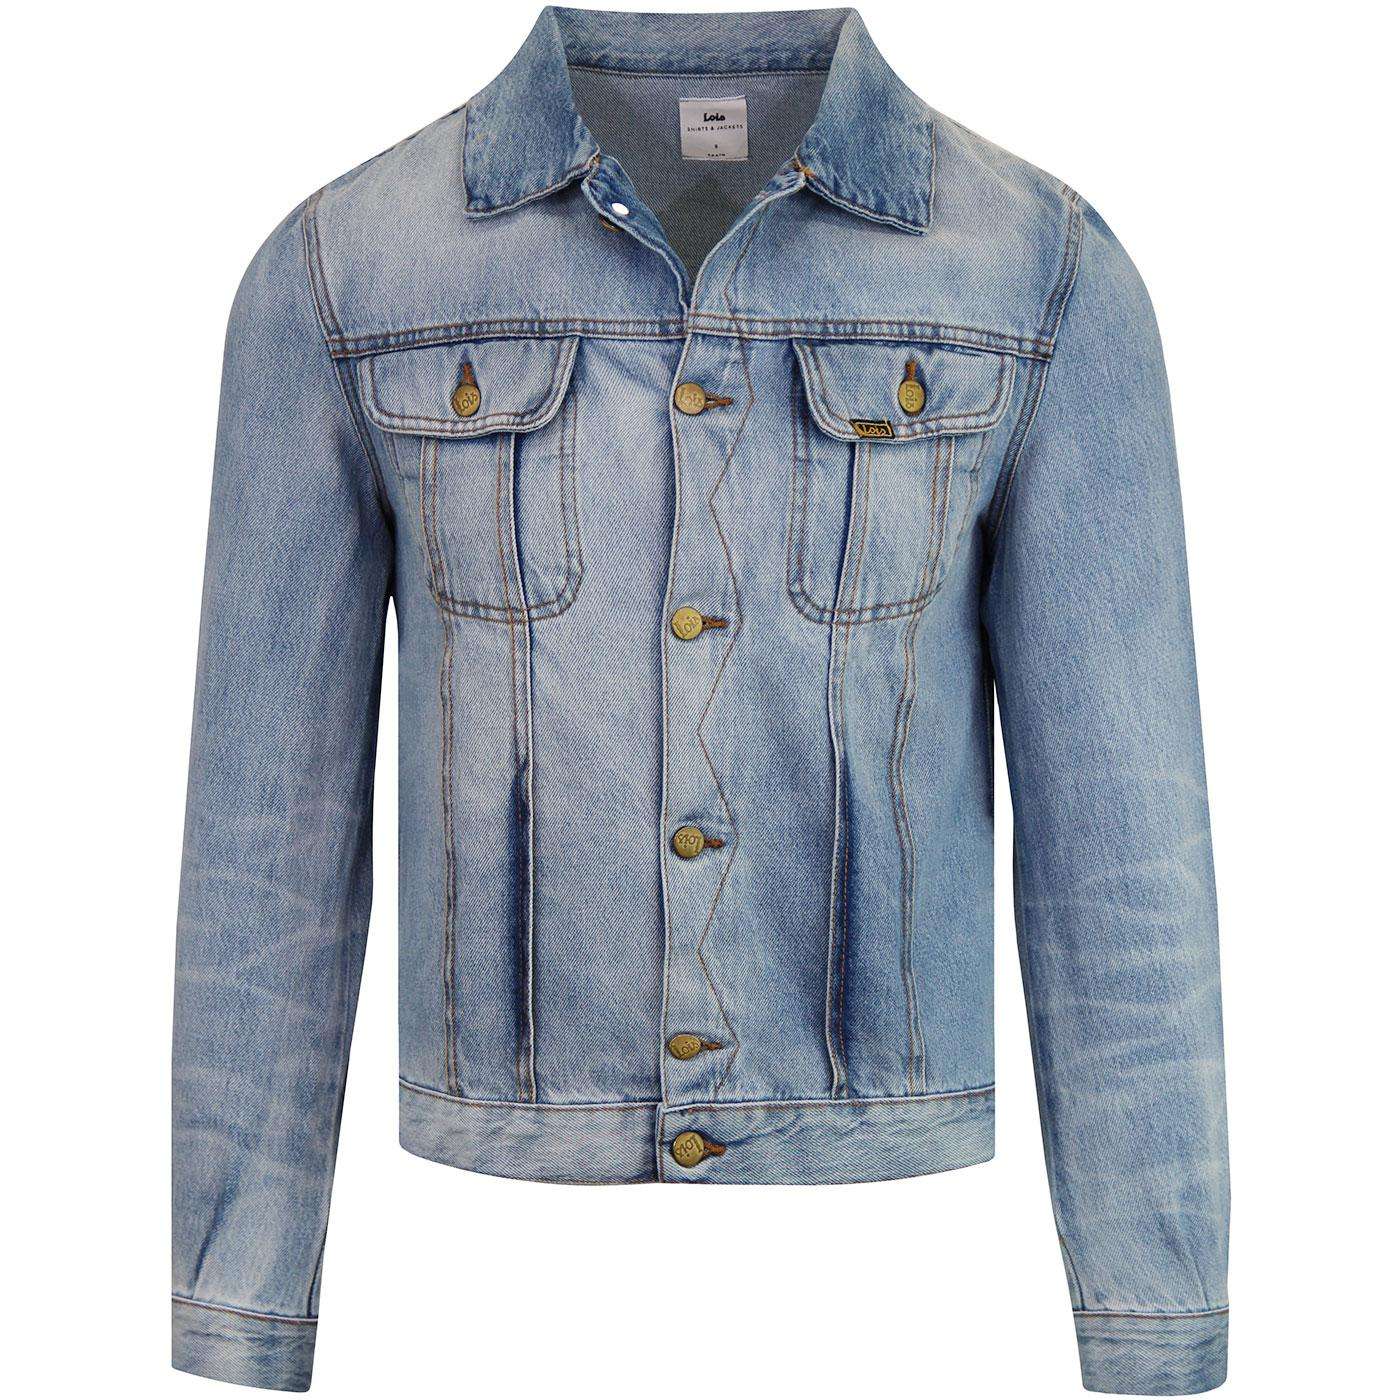 Torero Boy LOIS Retro 60s Distressed Denim Jacket